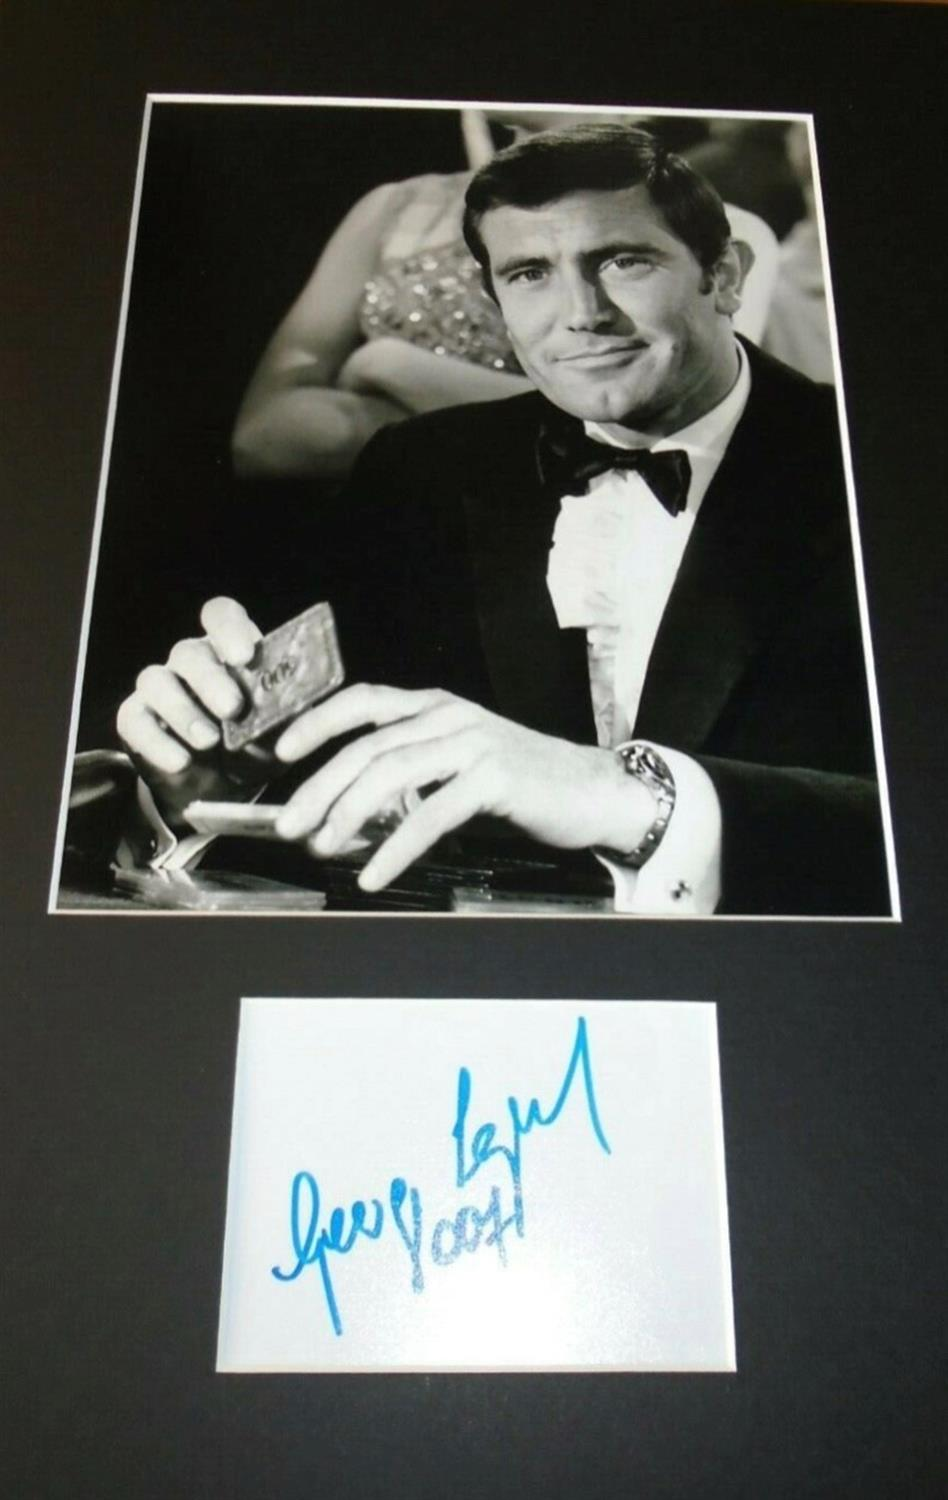 A Genuine Hand-Signed George Lazenby 007 Signature on Card